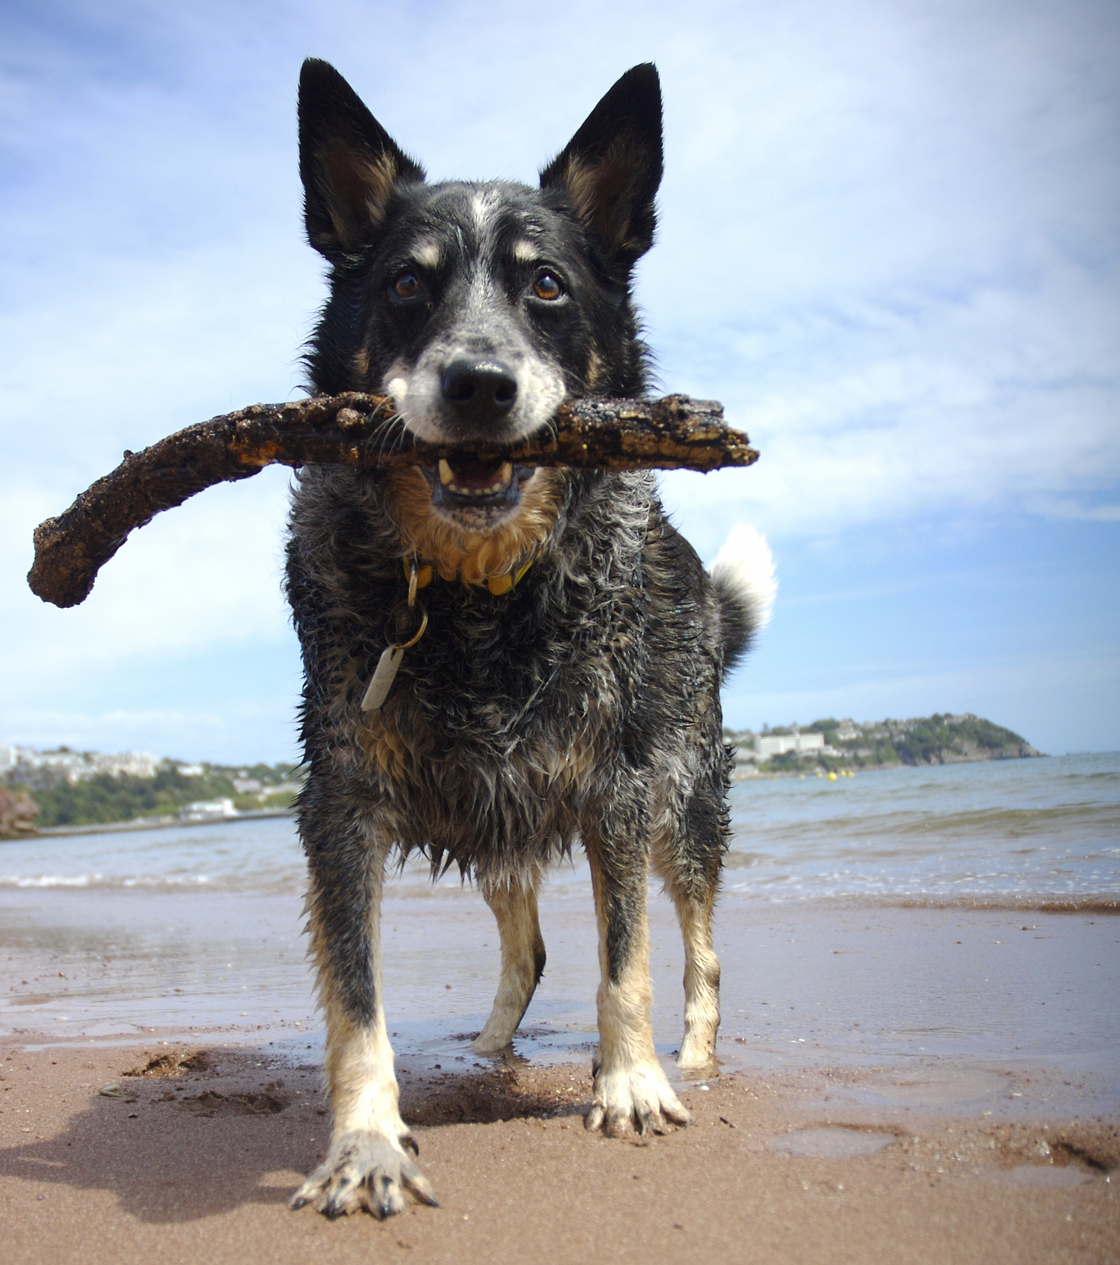 A dog stands on a beach with a stick in its mouth.